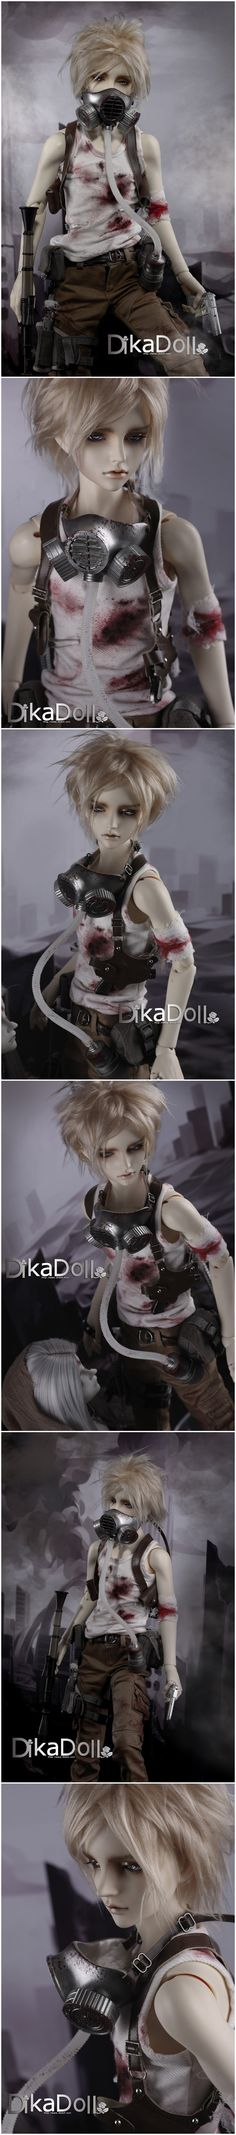 There's something about this I just love. Galois-1, 73cm Dika Doll - BJD Dolls, Accessories - Alice's Collections